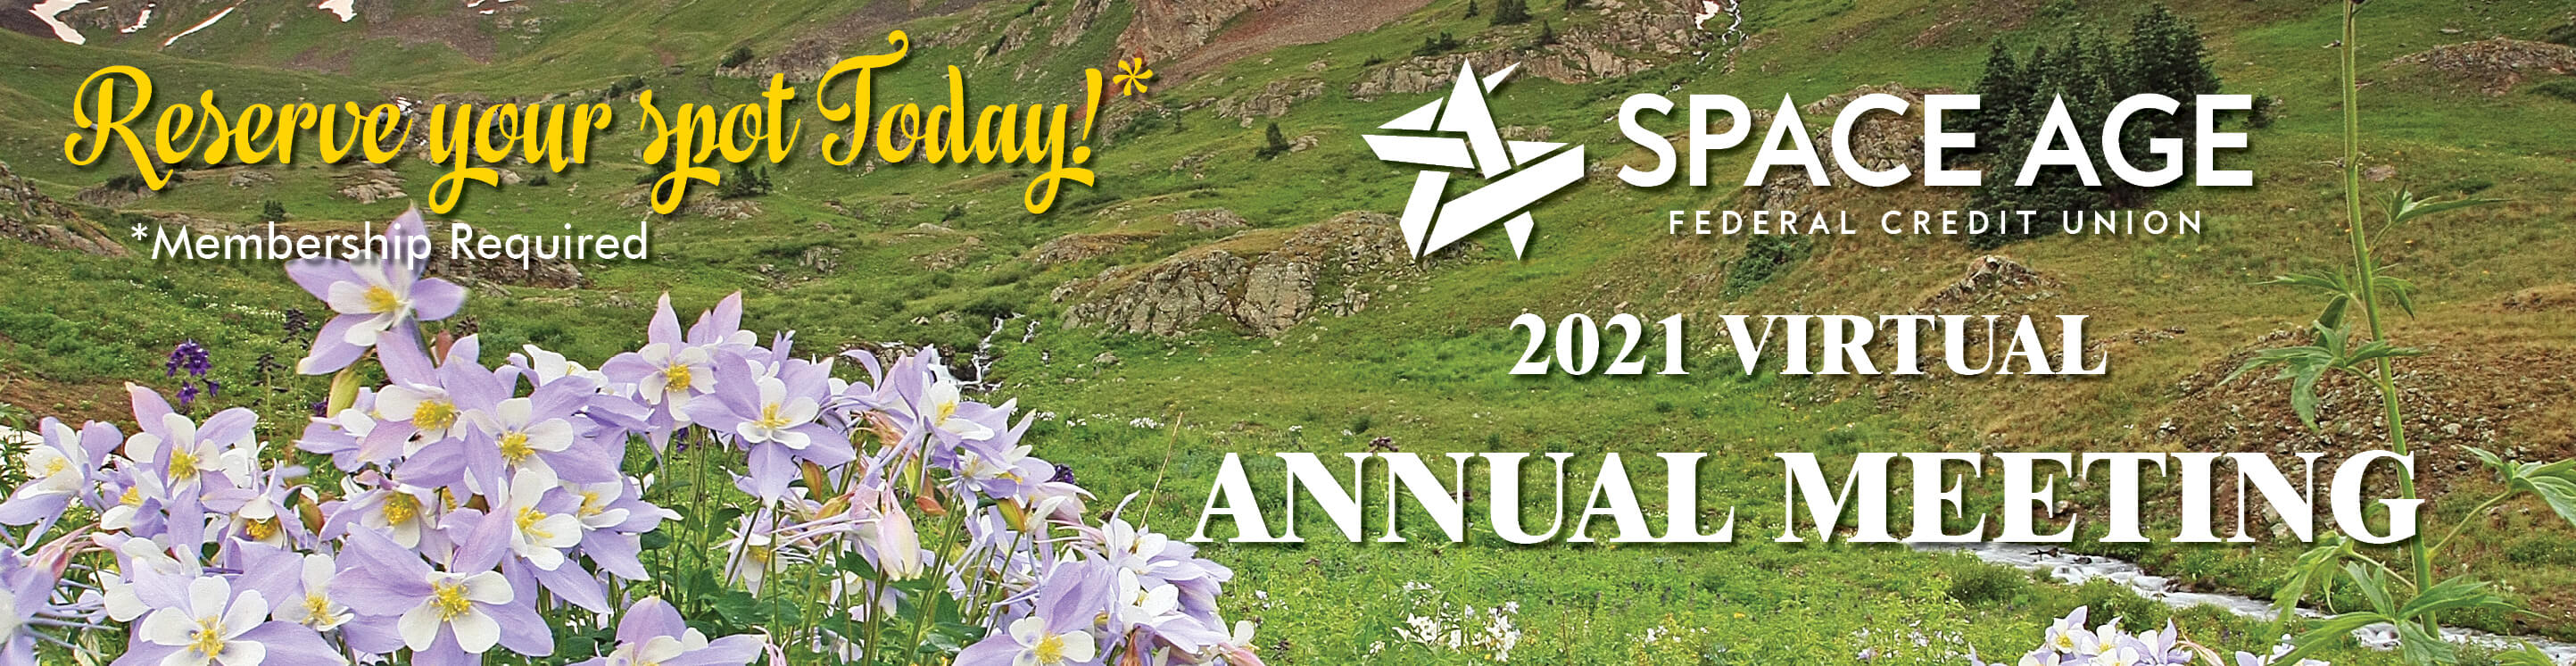 The banner shows a field of green grass and Columbine flowers on a mountain side. The Wording reads, 2021 Virtual Annual Meeting, Reserve Your Spot Today, Membership required.